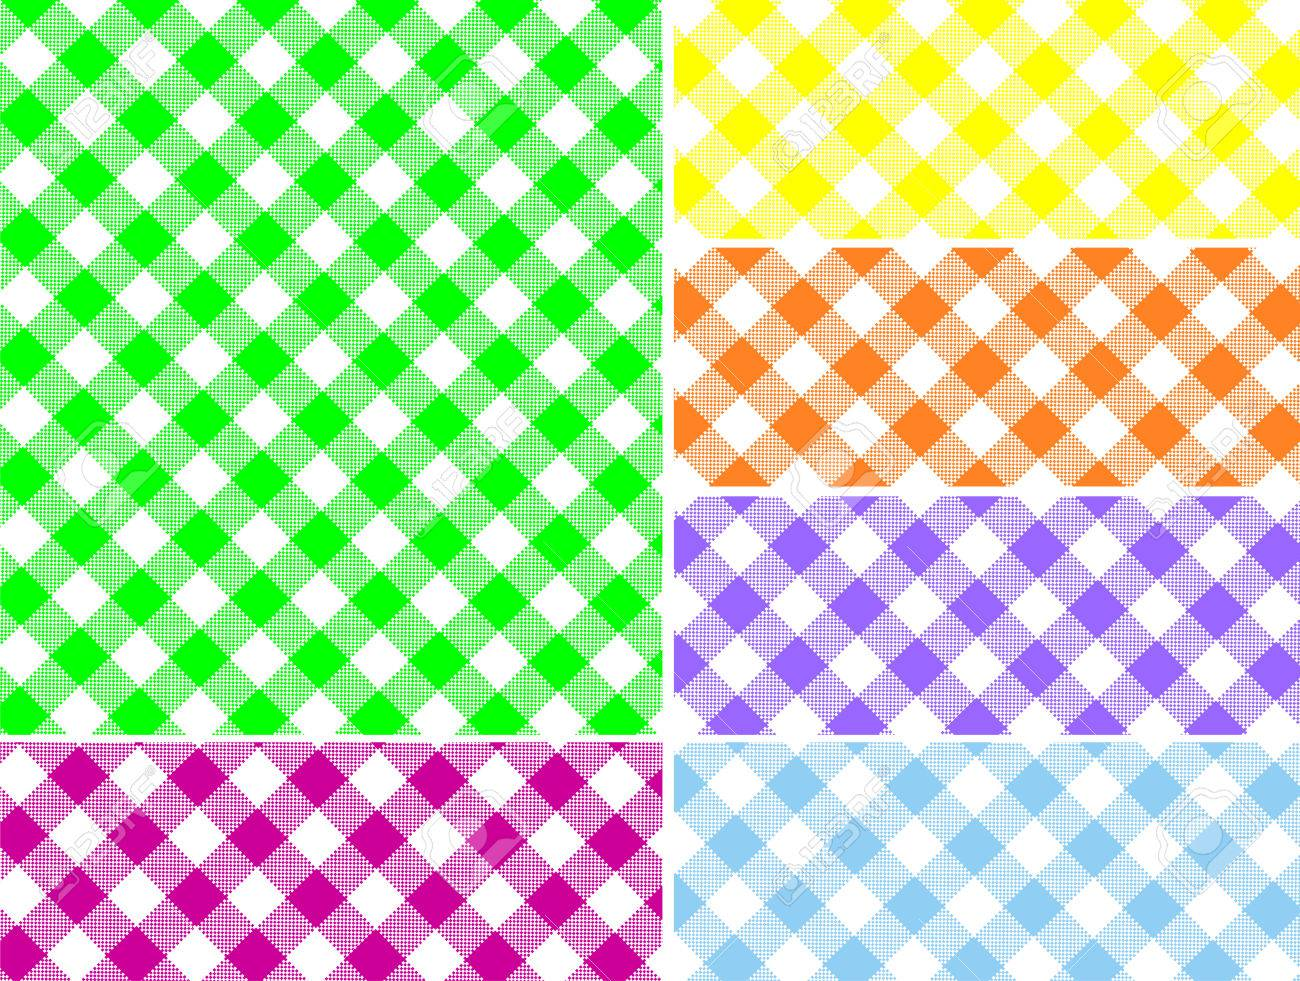 Woven gingham swatches in six colors that can be easily changed. - 6803396